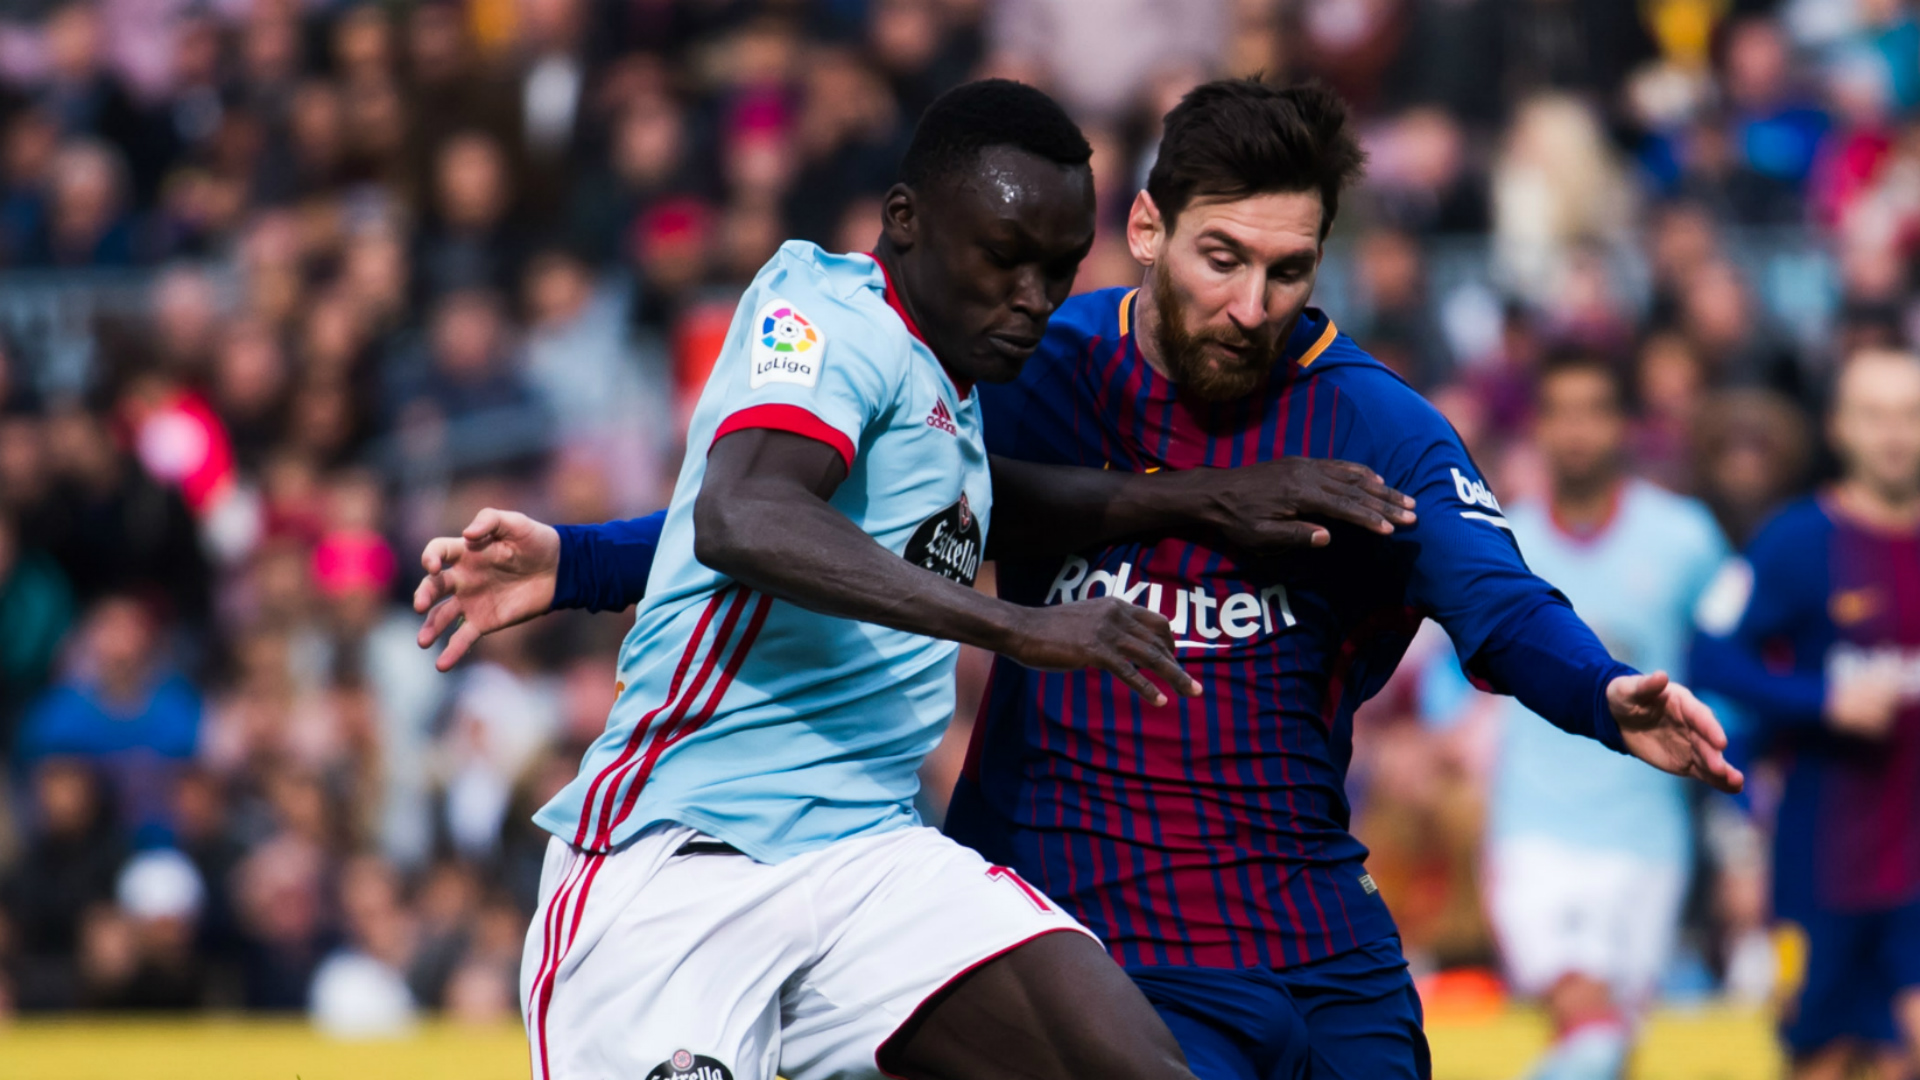 Copa del Rey: Barcelona thrash Celta Vigo to reach quarter-finals